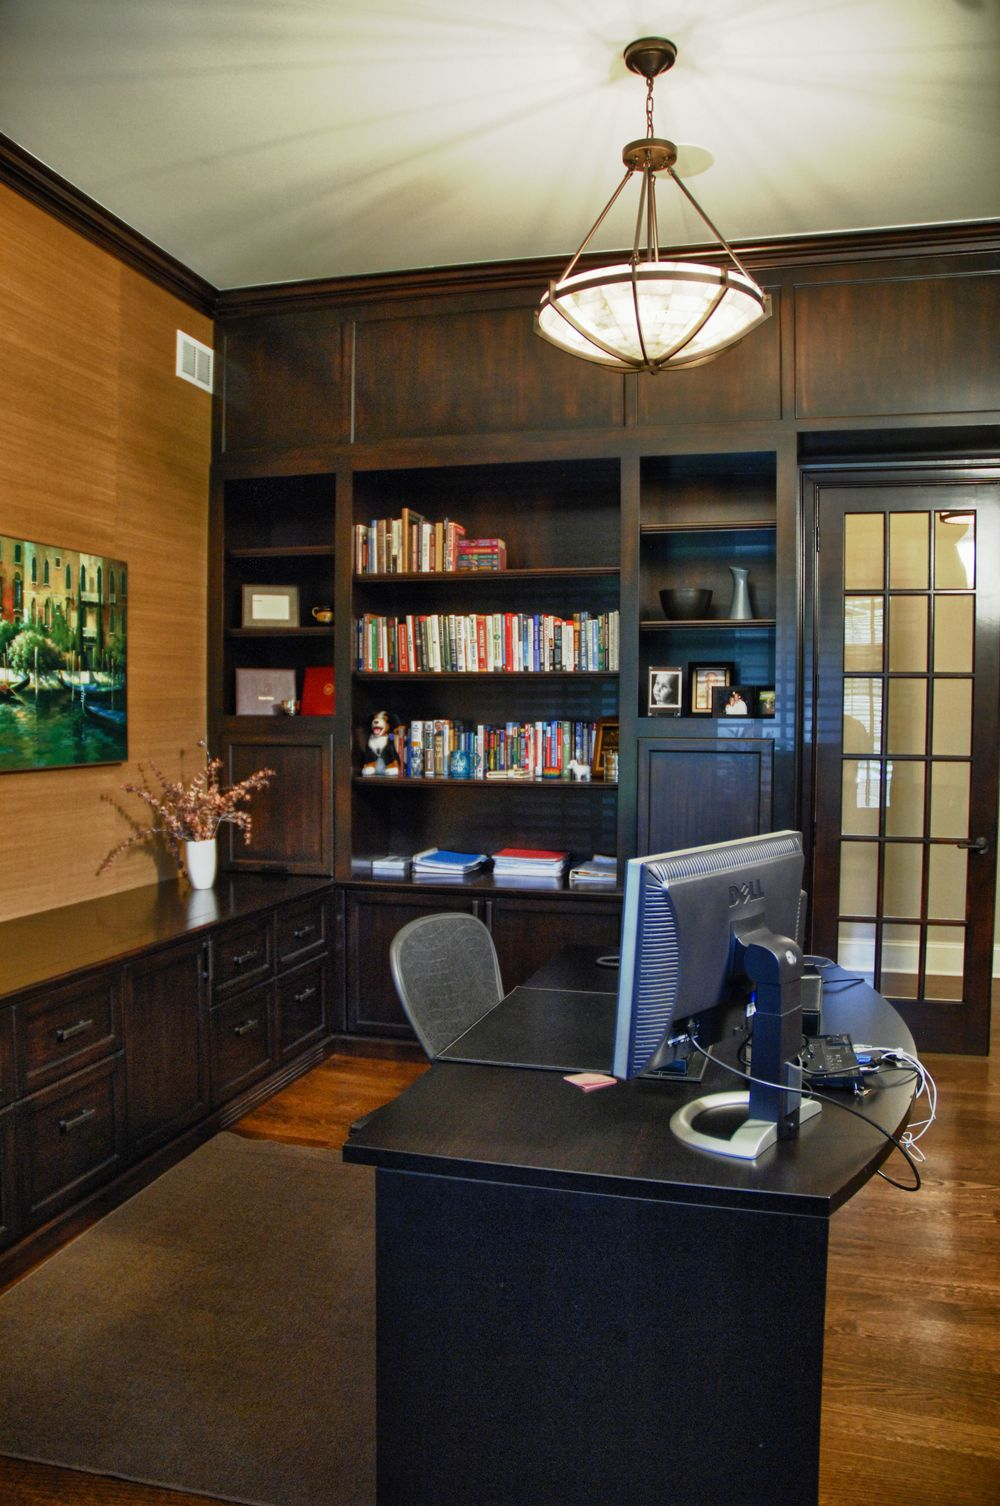 Hodges His Office 01.JPG